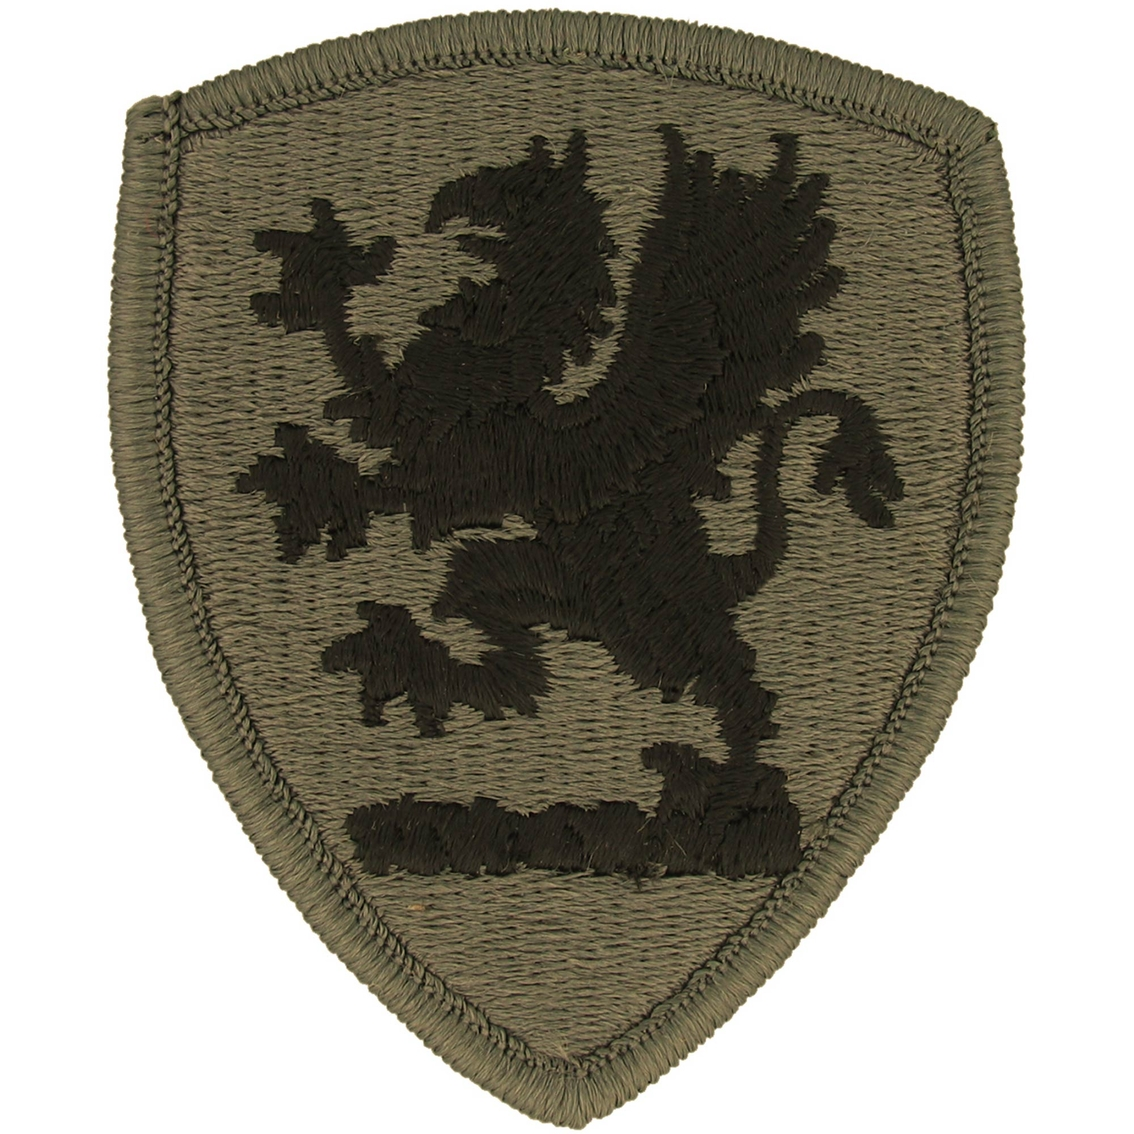 Army national guard patch placement